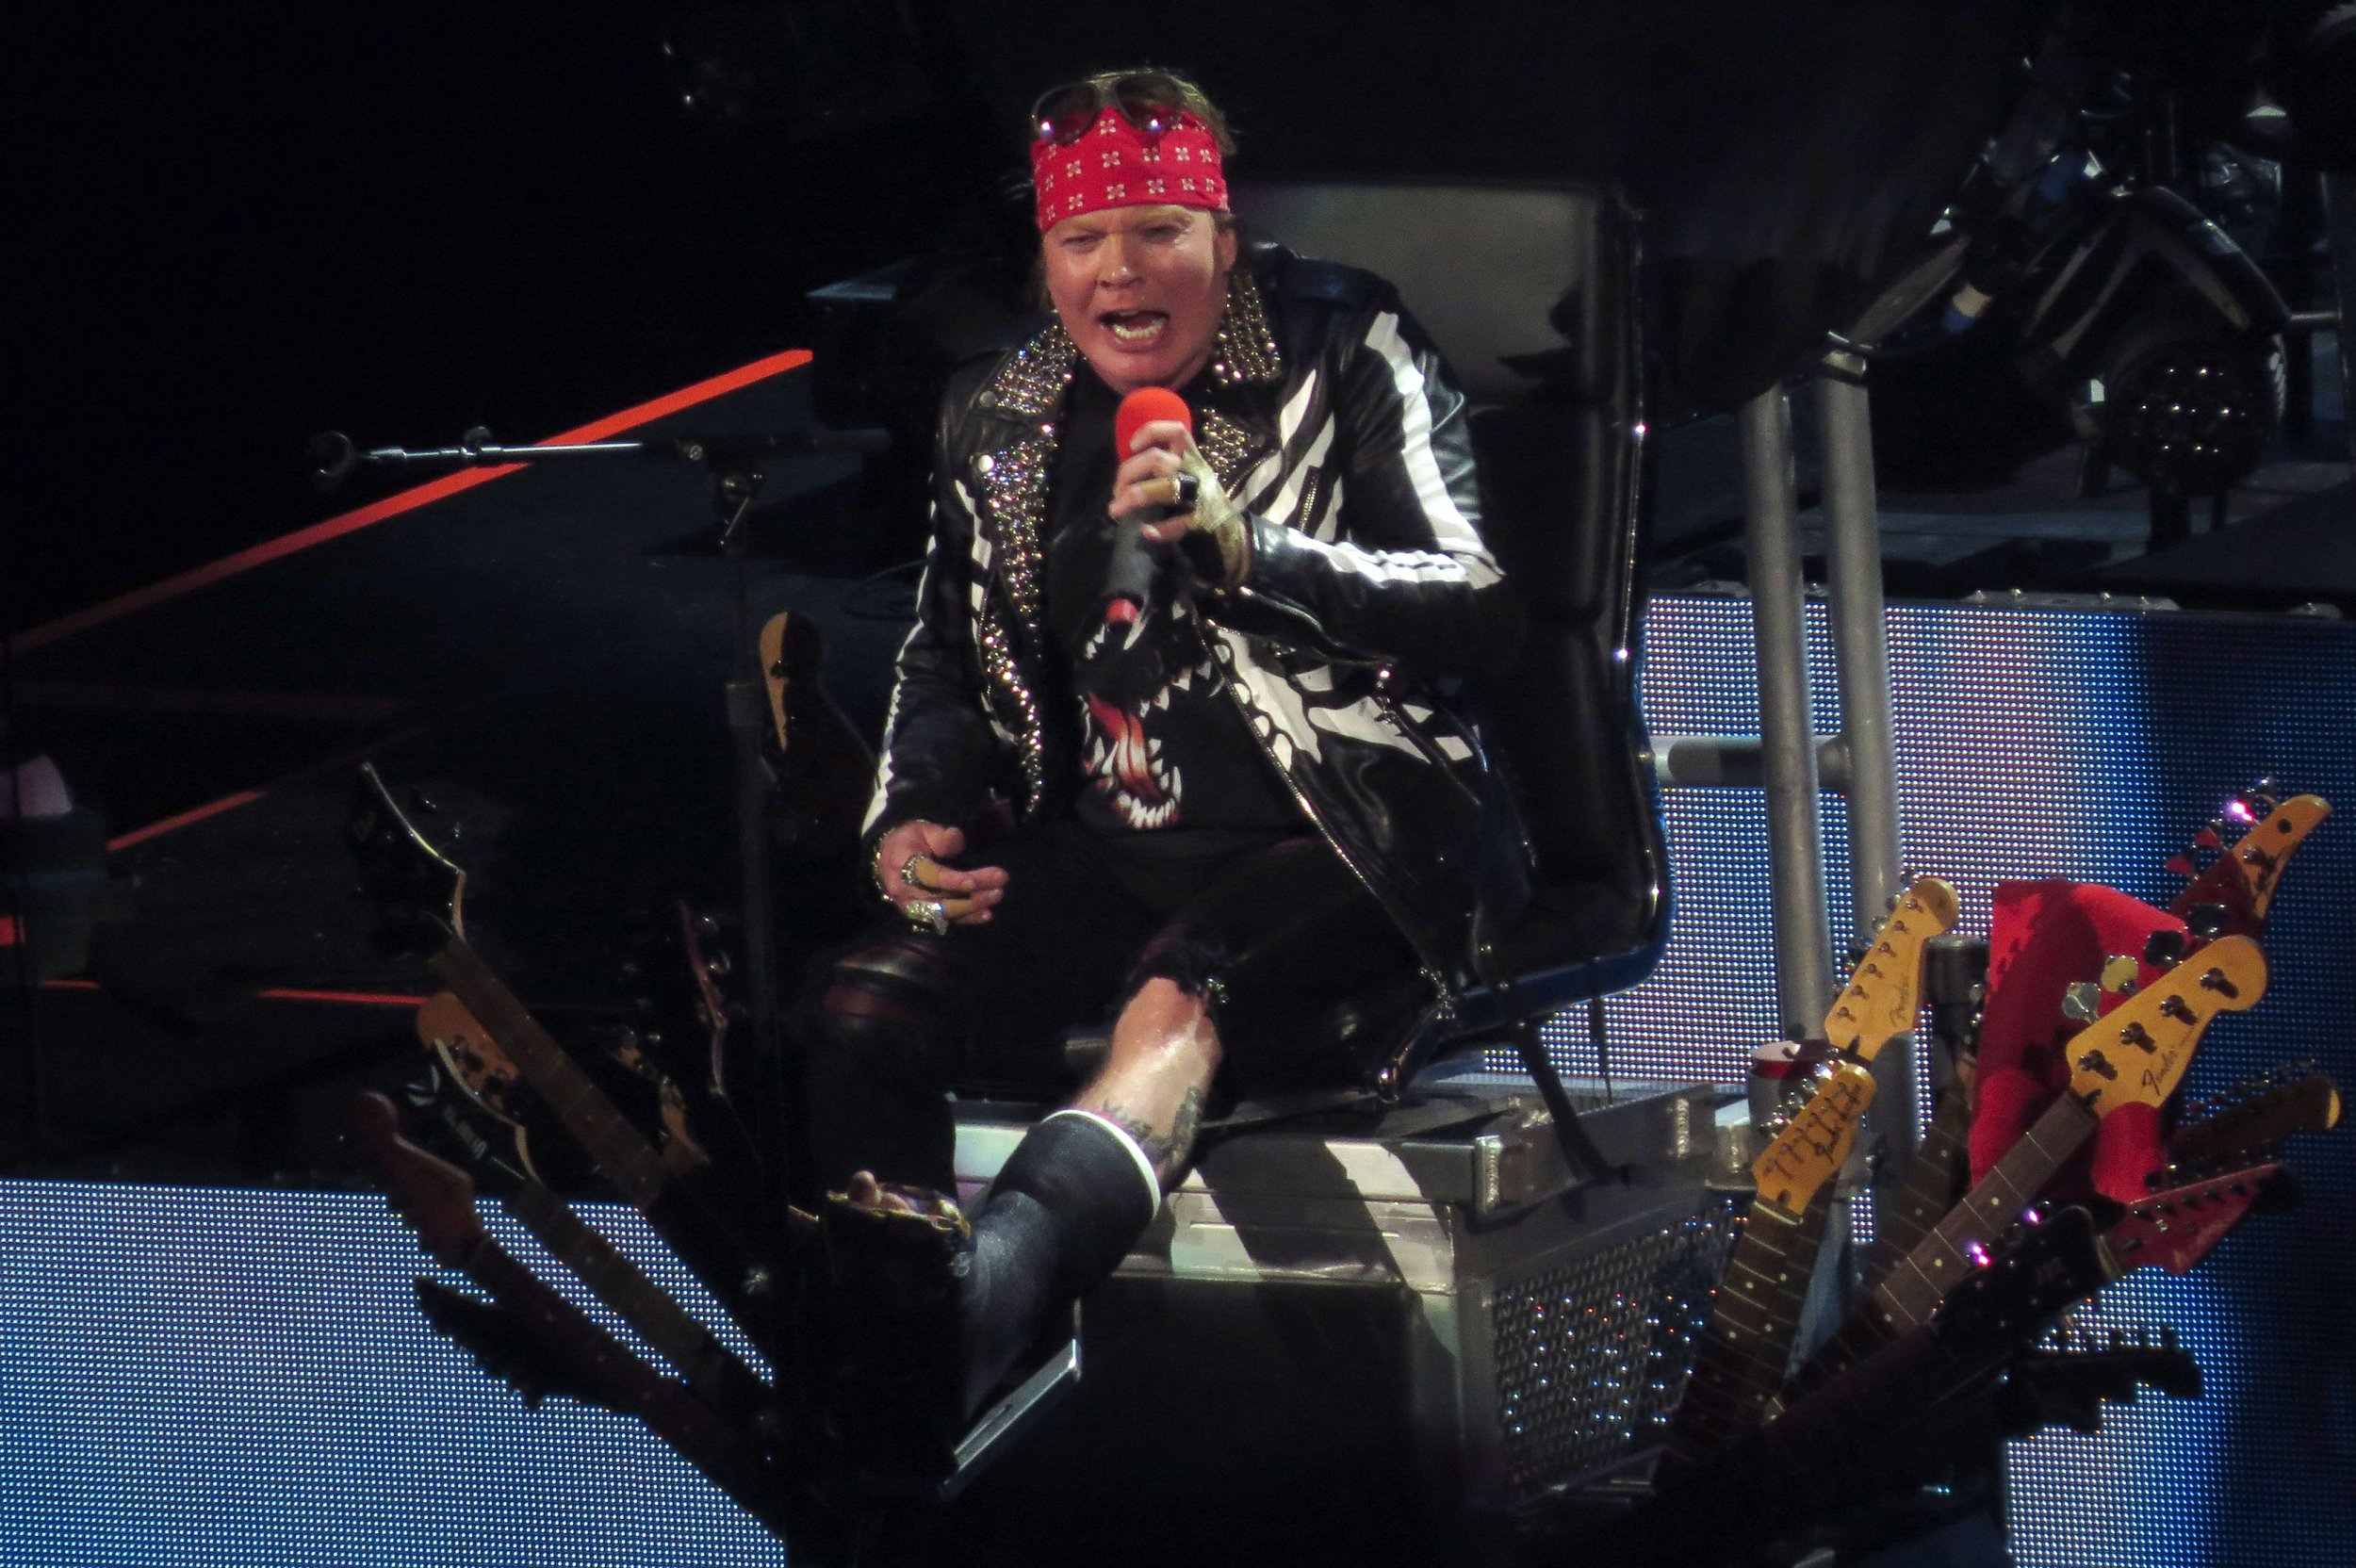 Guns N' Roses's Axl Rose broke his foot and now he's using Dave Grohl's throne